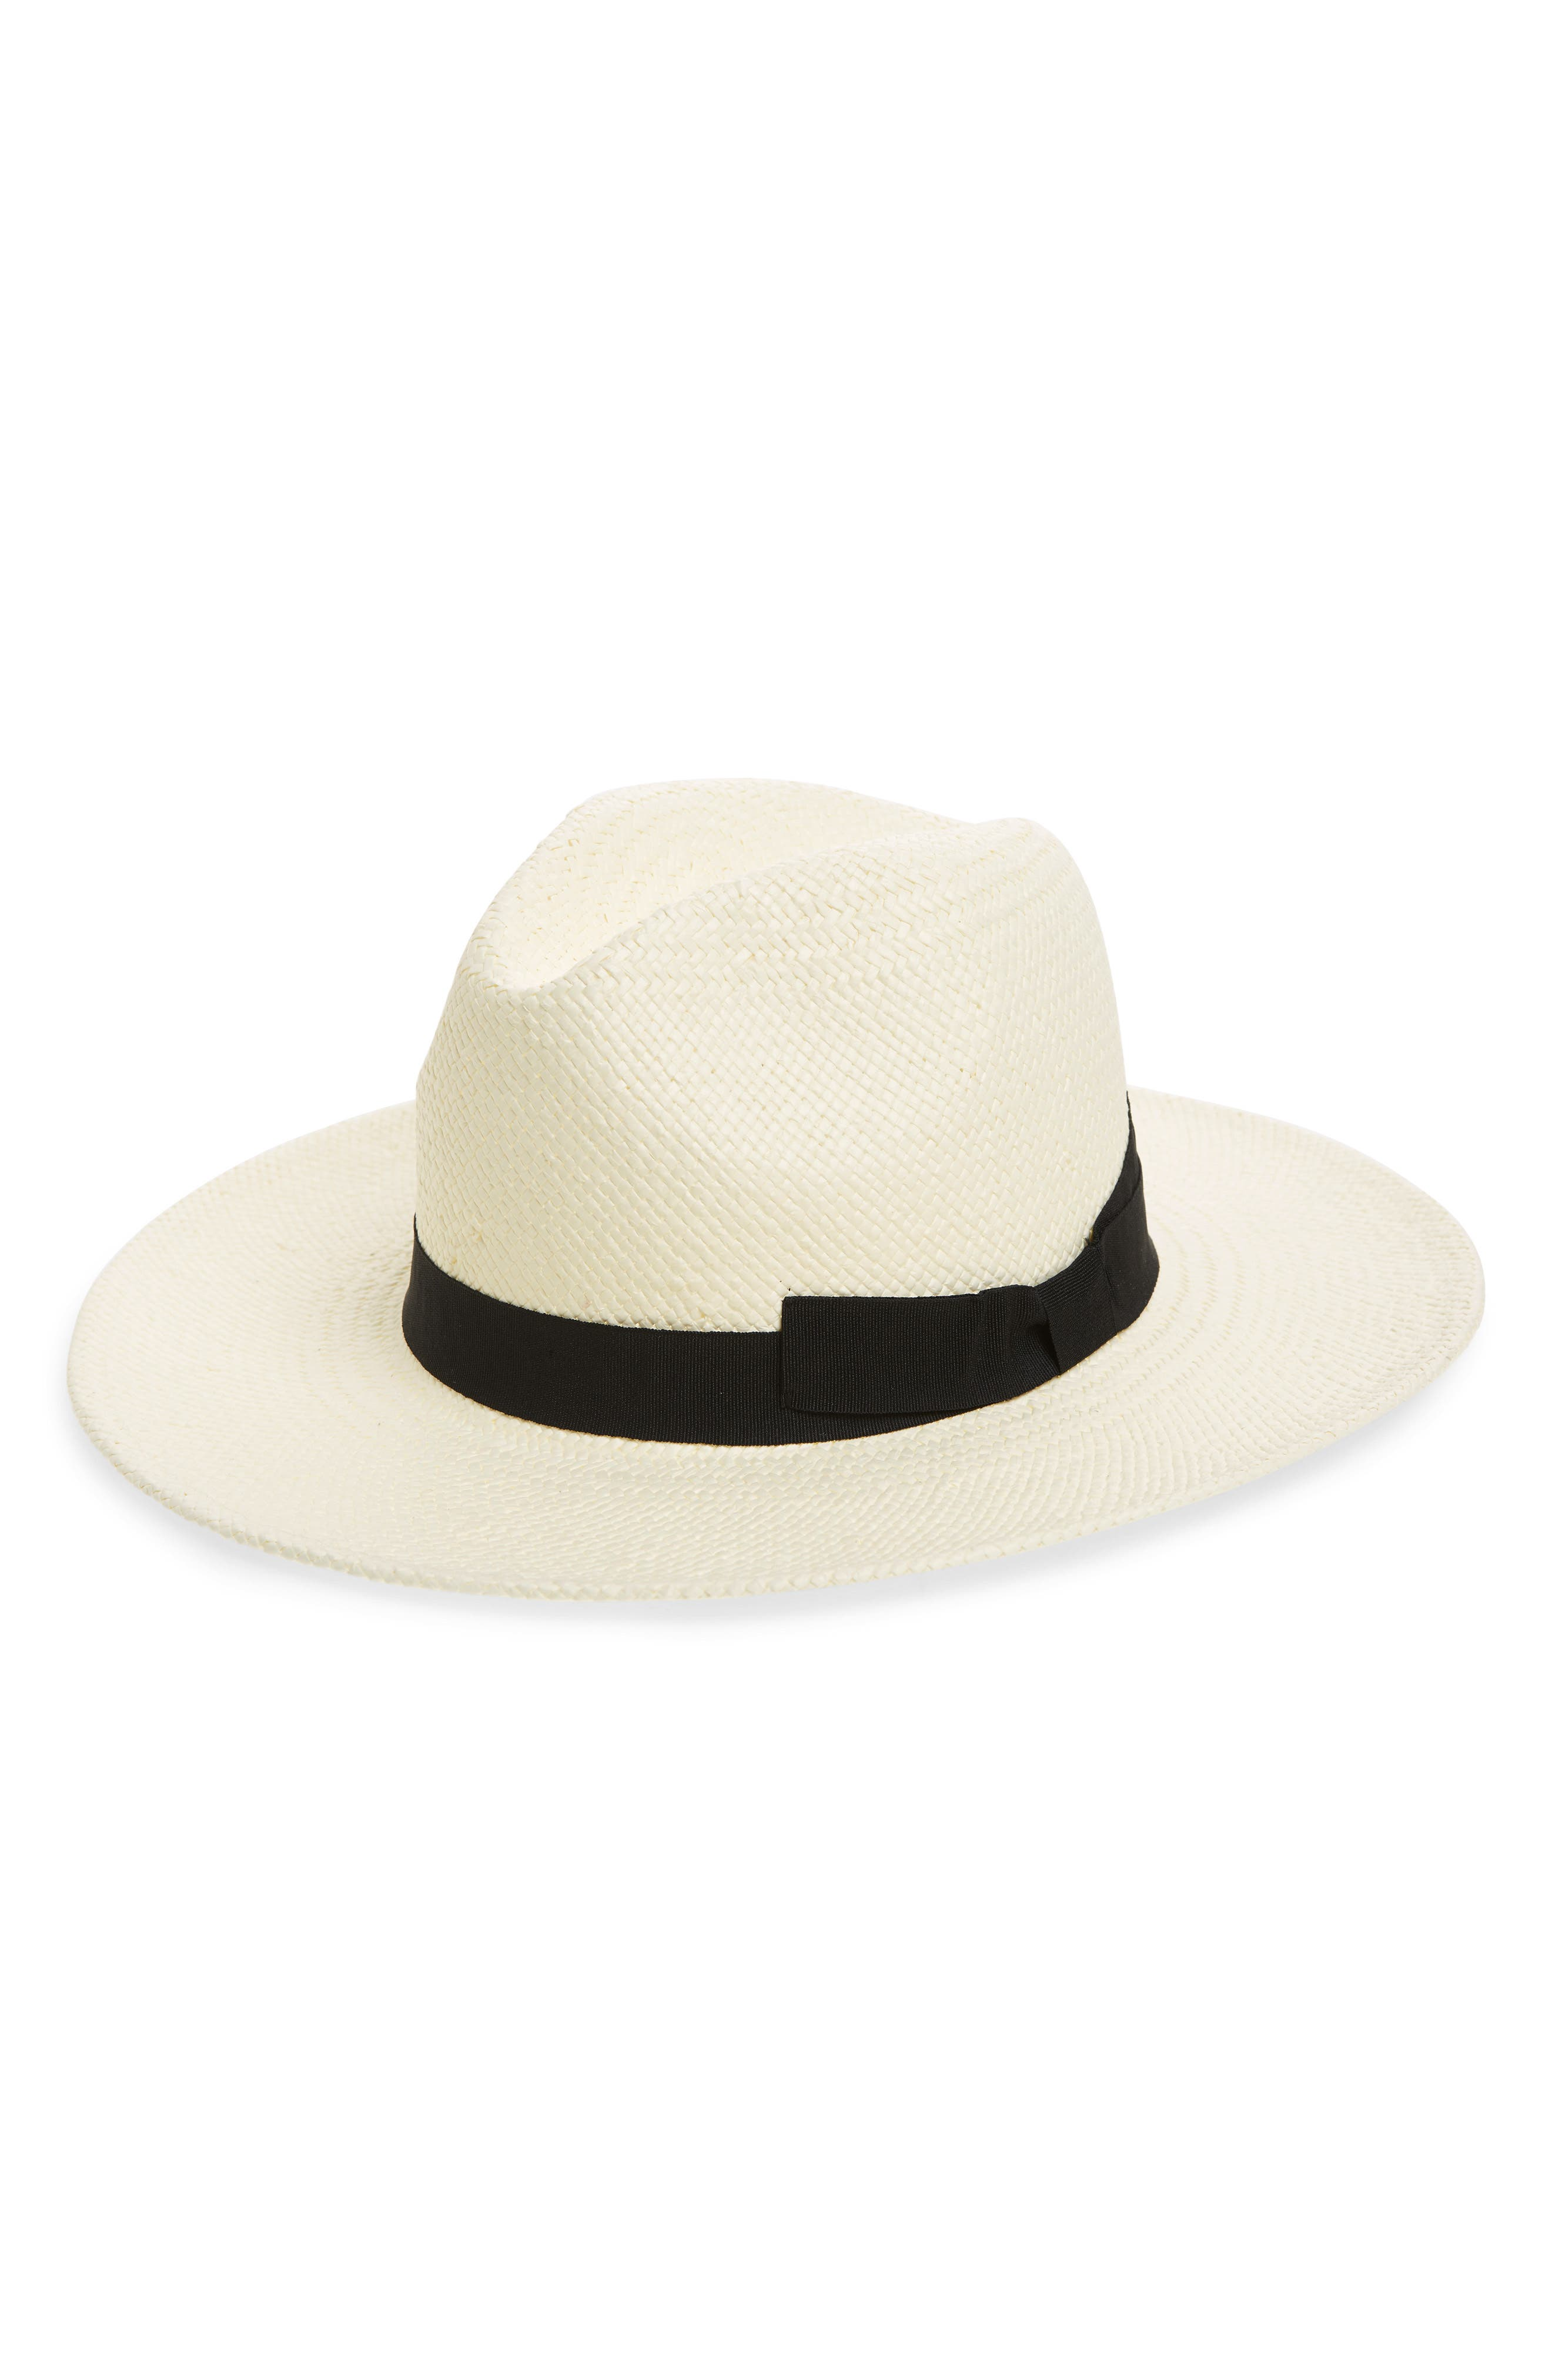 9ce66bb98cdc60 Women's Fedoras & Panama Hats | Nordstrom